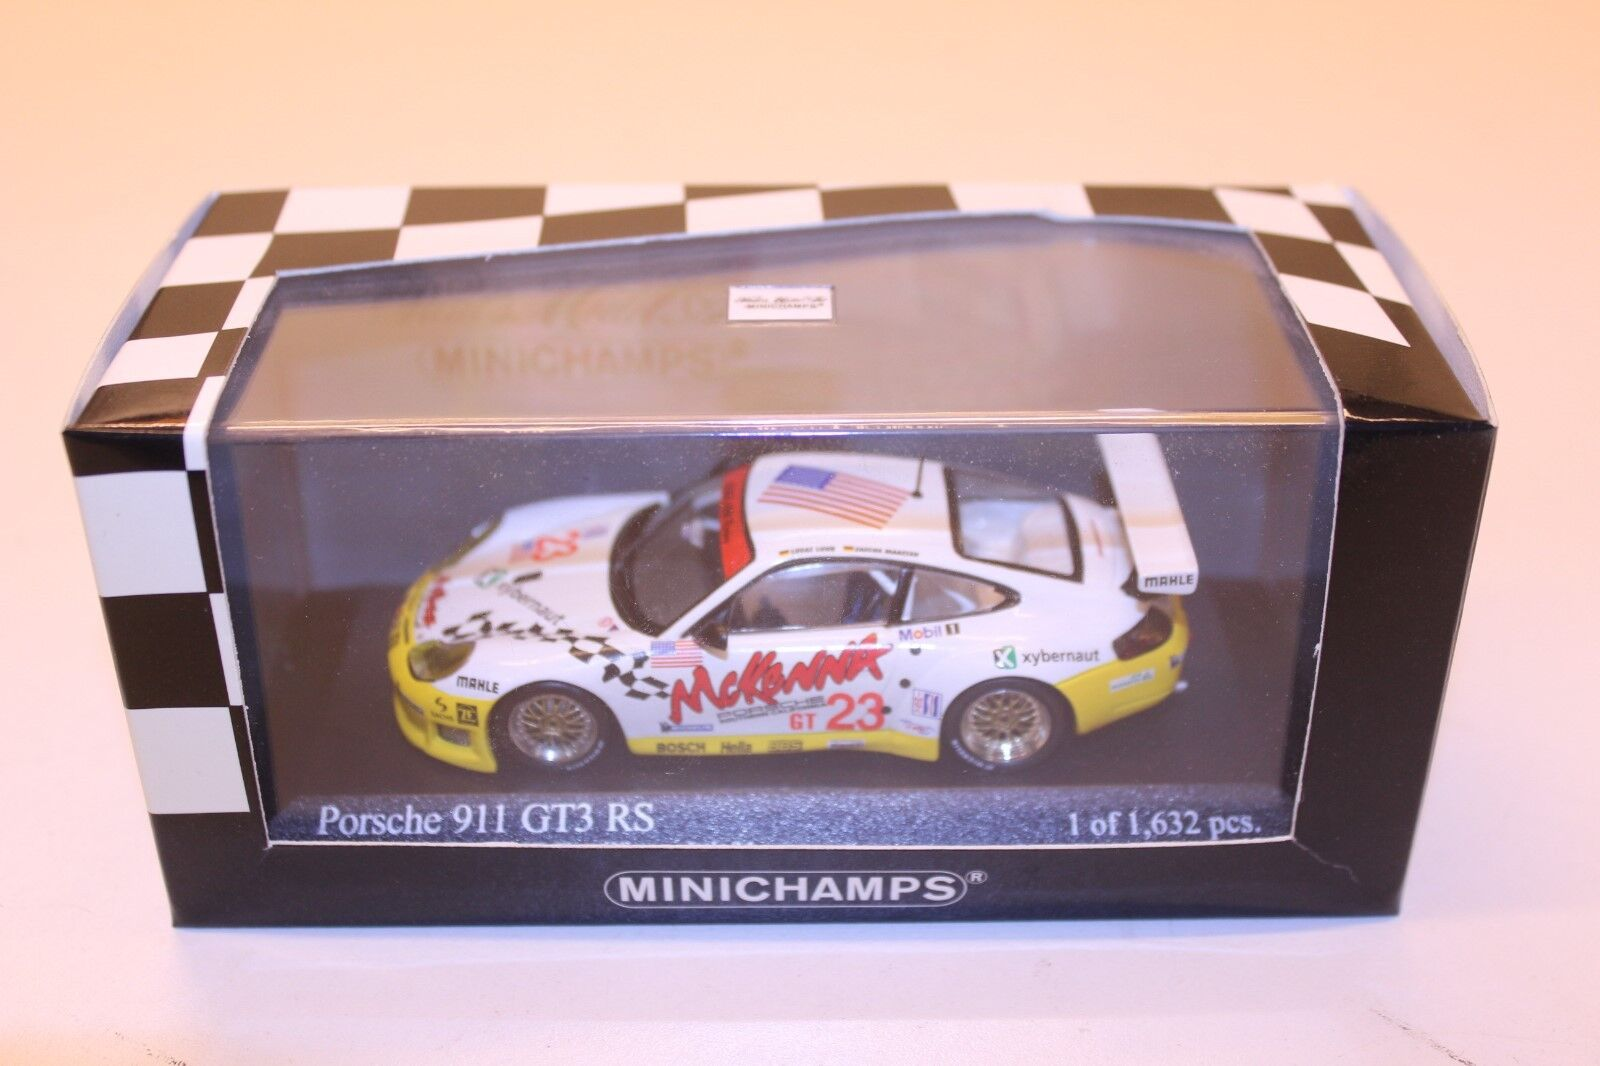 MINICHAMPS PORSCHE 911 GT3 RS Sebring 12hrs 1 43 1 of 1632pcs